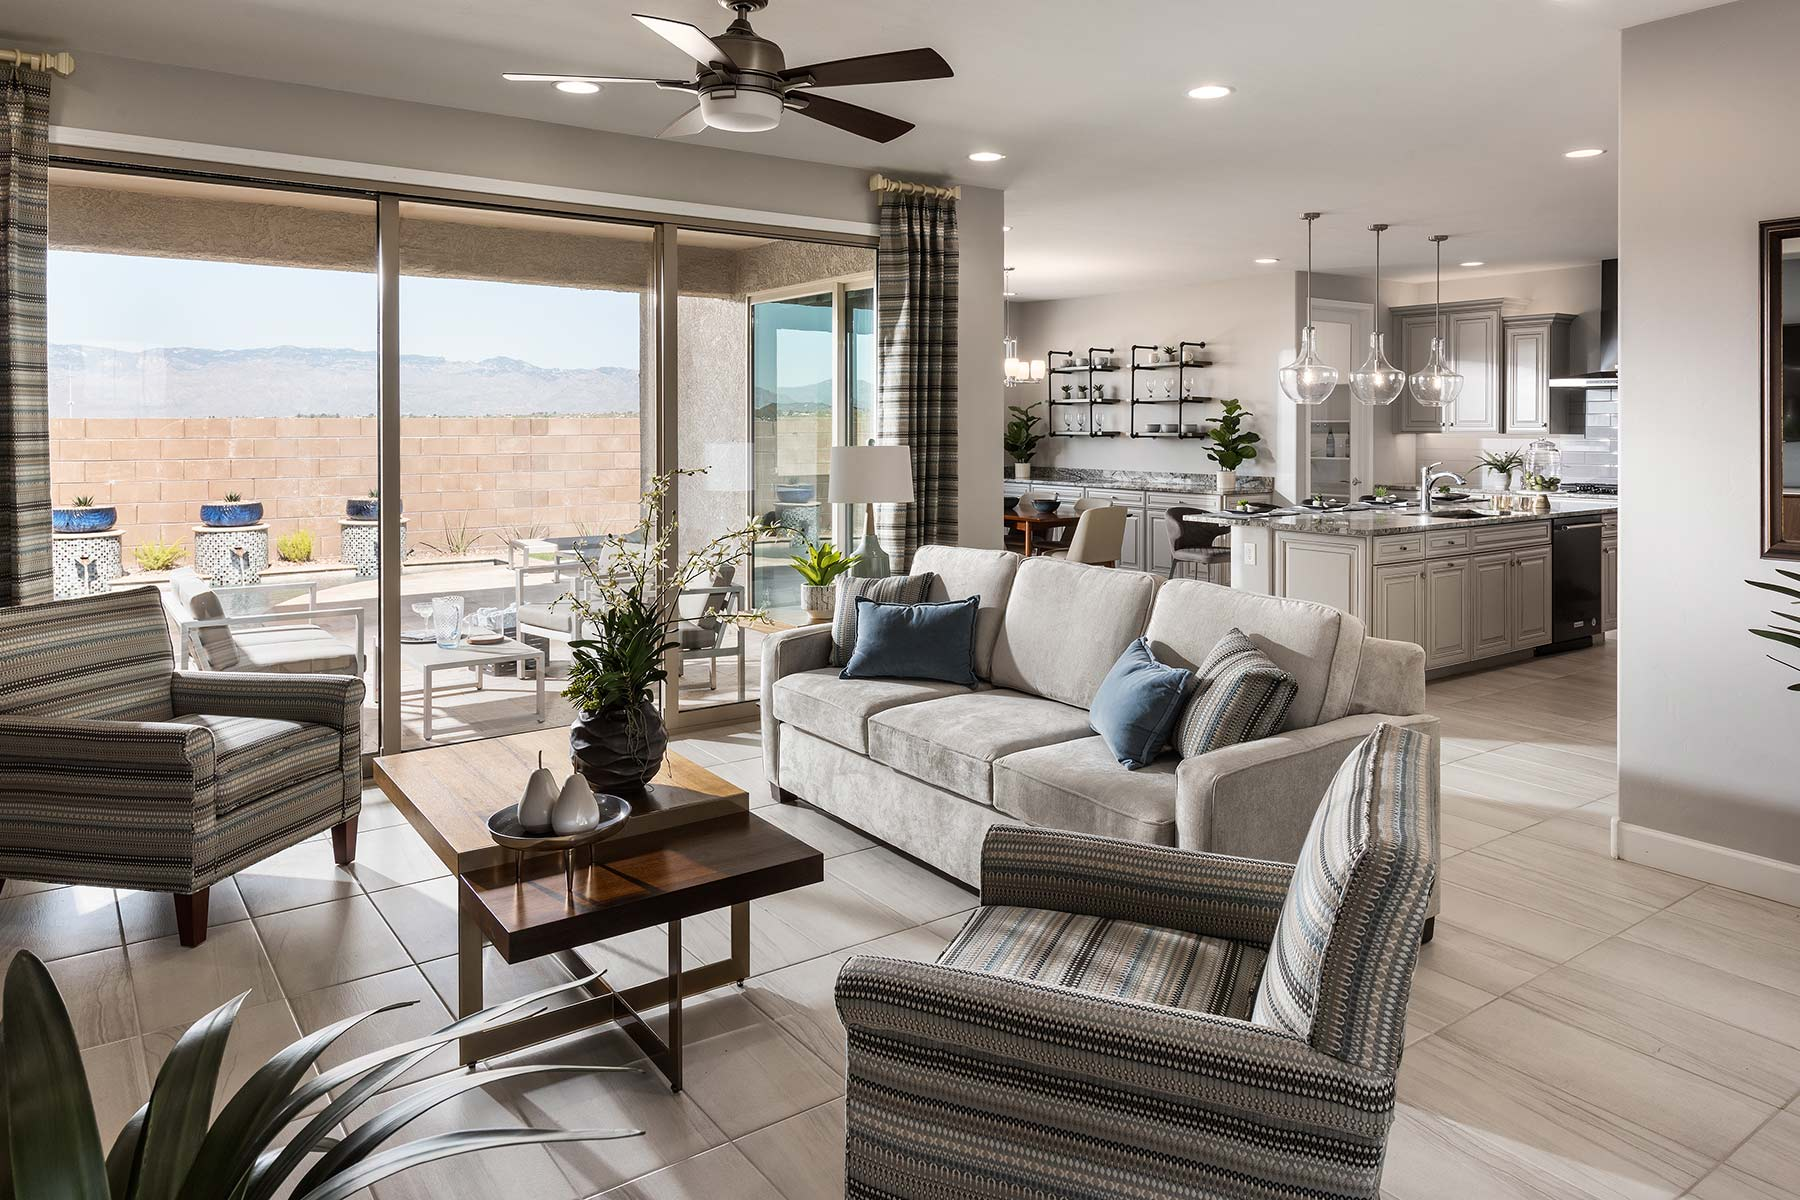 Echo Plan Greatroom at Saguaro Trails in Tucson Arizona by Mattamy Homes